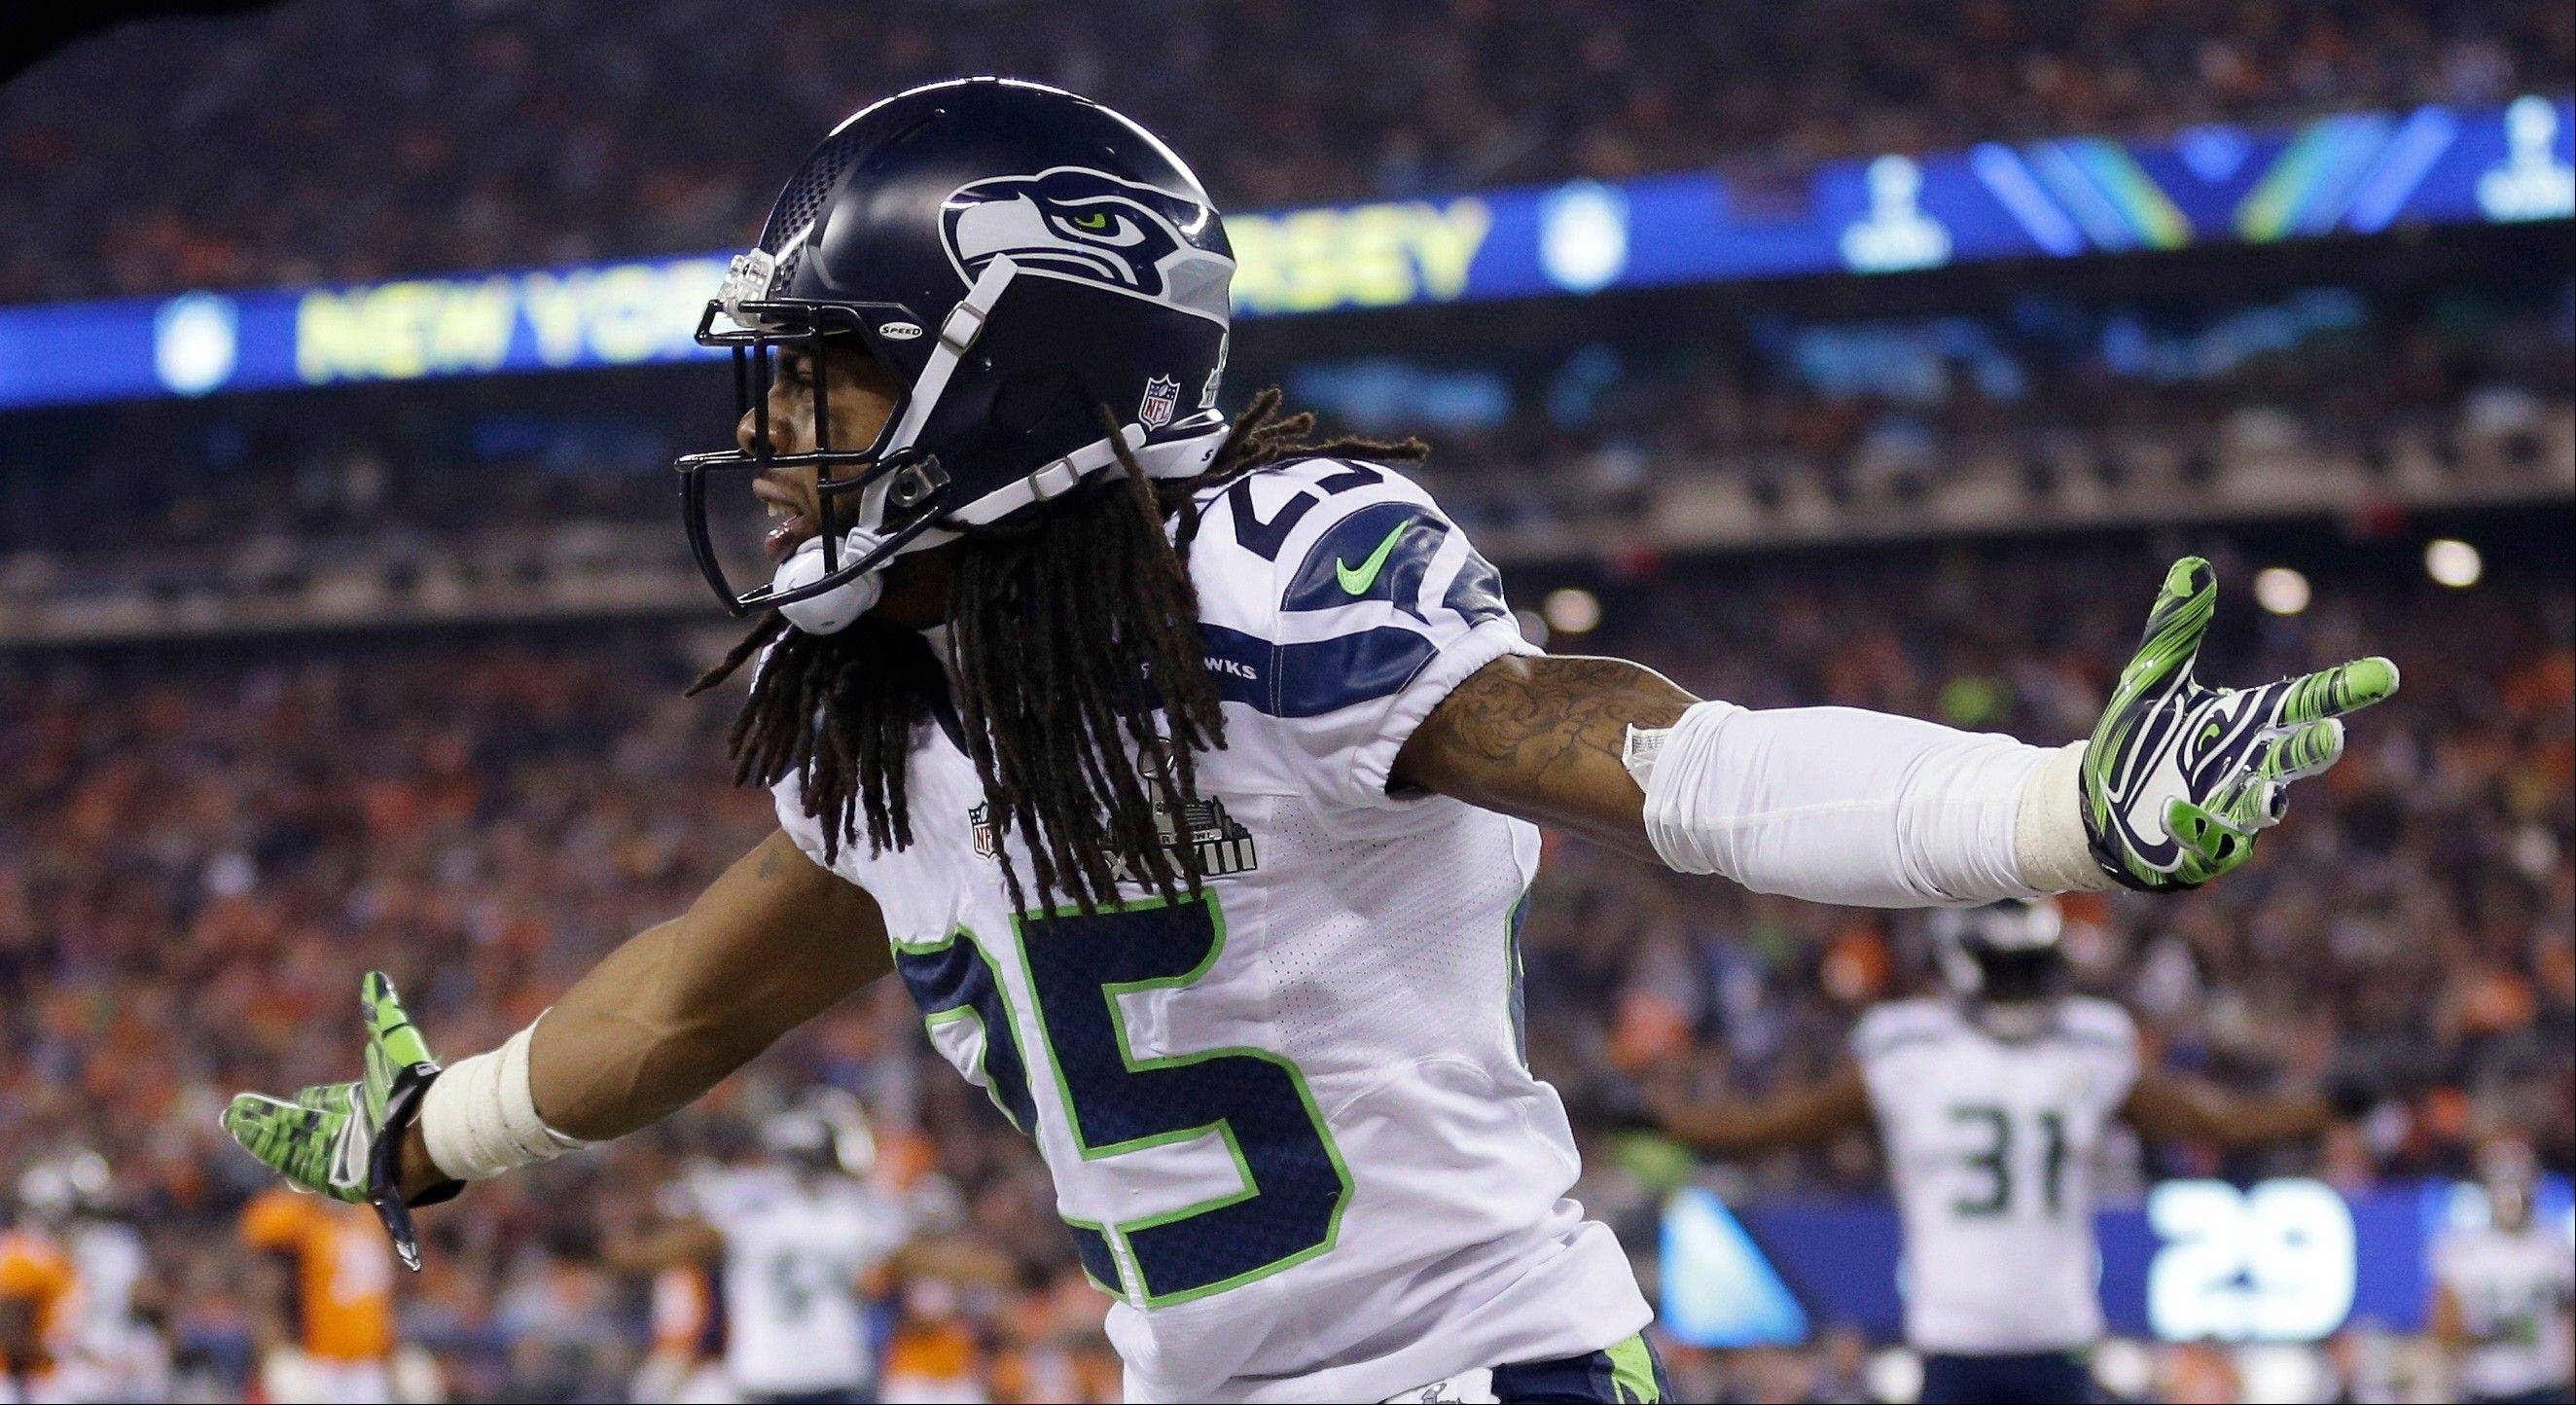 Purist Bears fans likely are shaking their heads as if they want nothing to do with outspoken Seahawks defensive back Richard Sherman. But as Mike Imrem points out, it's just like purist Bulls fans never would have accepted Dennis Rodman ... until he began helping them embark on winning three NBA titles.